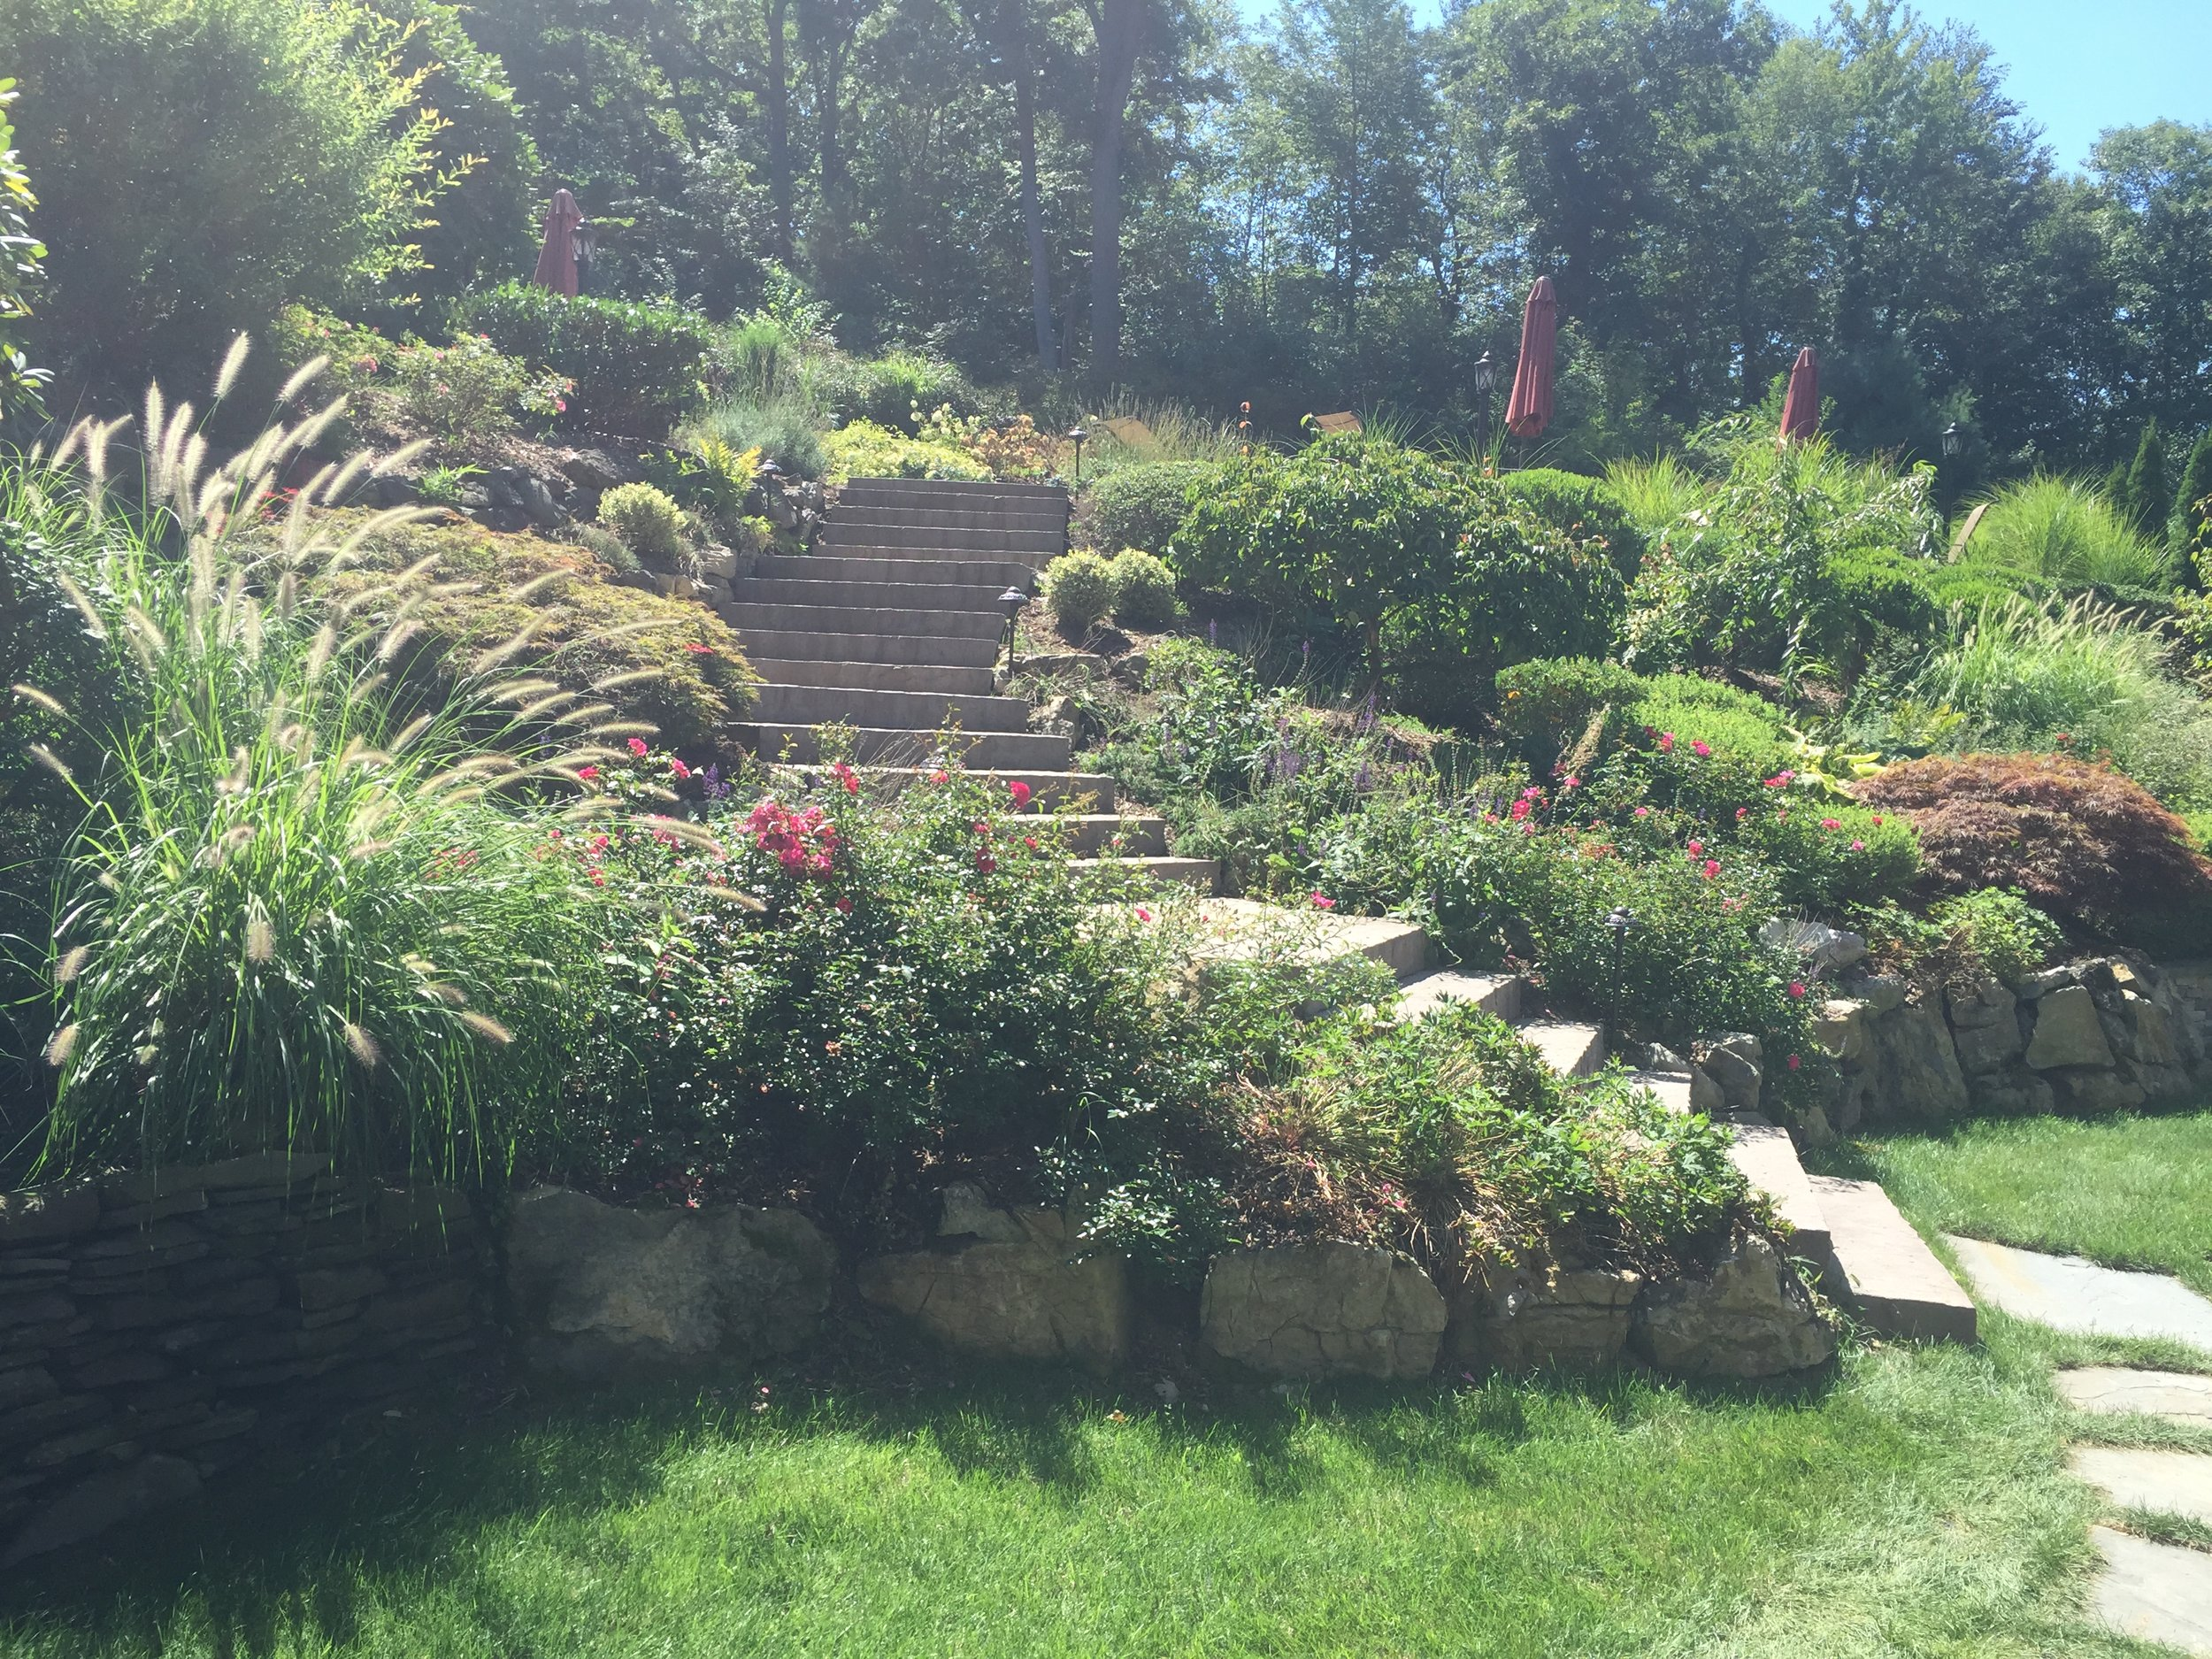 View Project Featuring Landscape Design:  Lush Tranquility    VIEW PROJECT